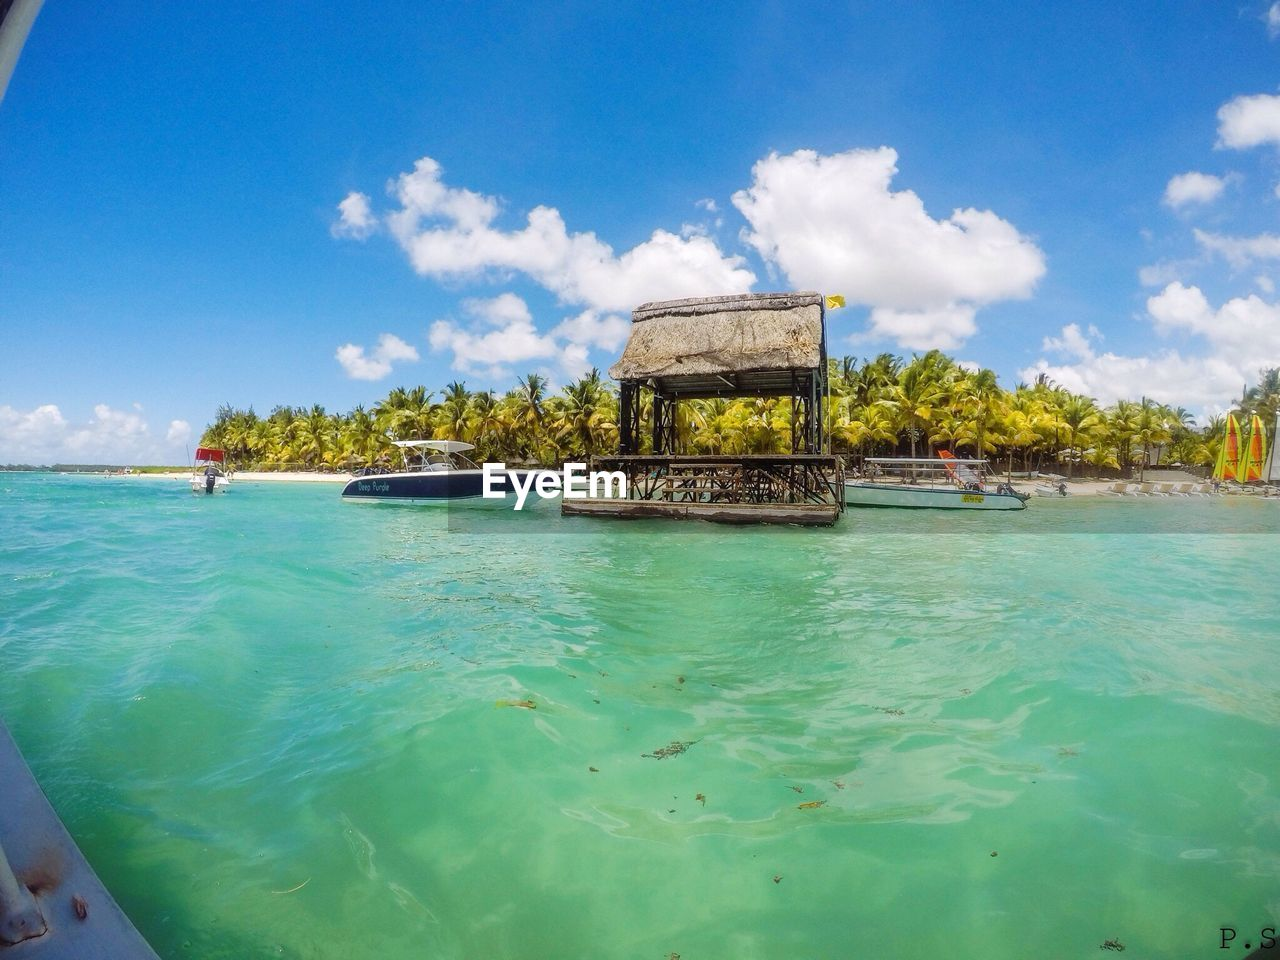 sea, sky, cloud - sky, water, day, beauty in nature, nature, scenics, outdoors, blue, tranquility, travel destinations, vacations, tree, beach, built structure, no people, architecture, horizon over water